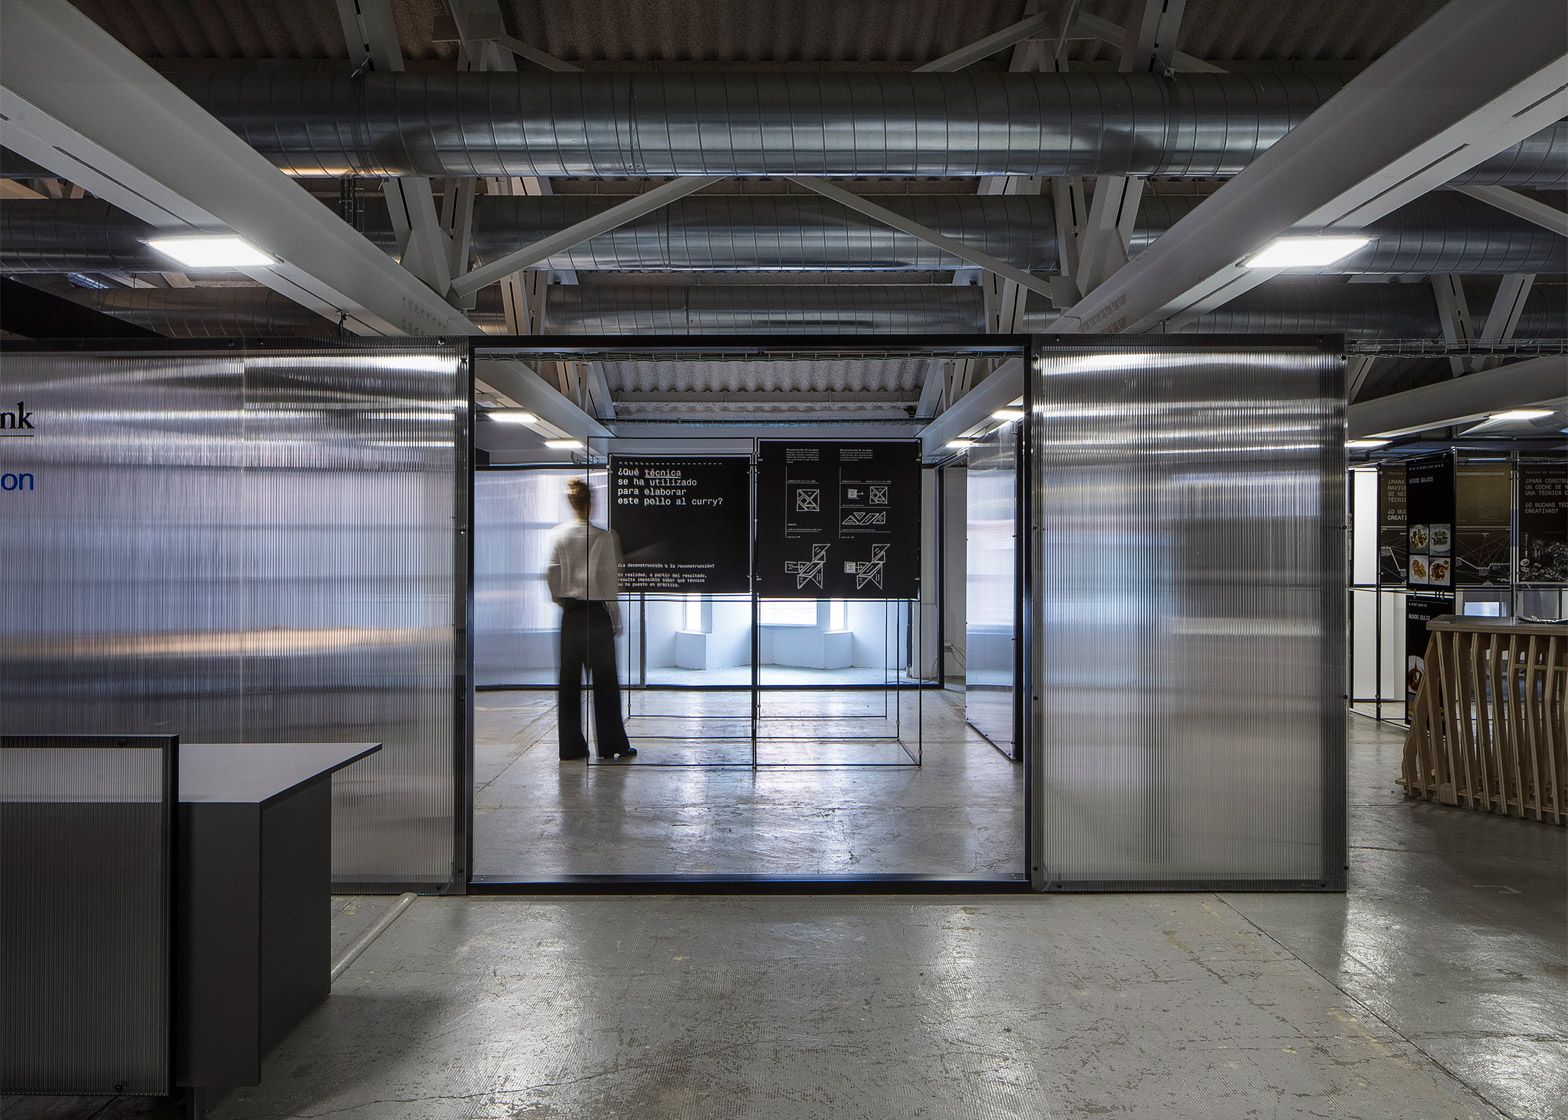 francesc rifé studio used polycarbonate sheets to divide an old